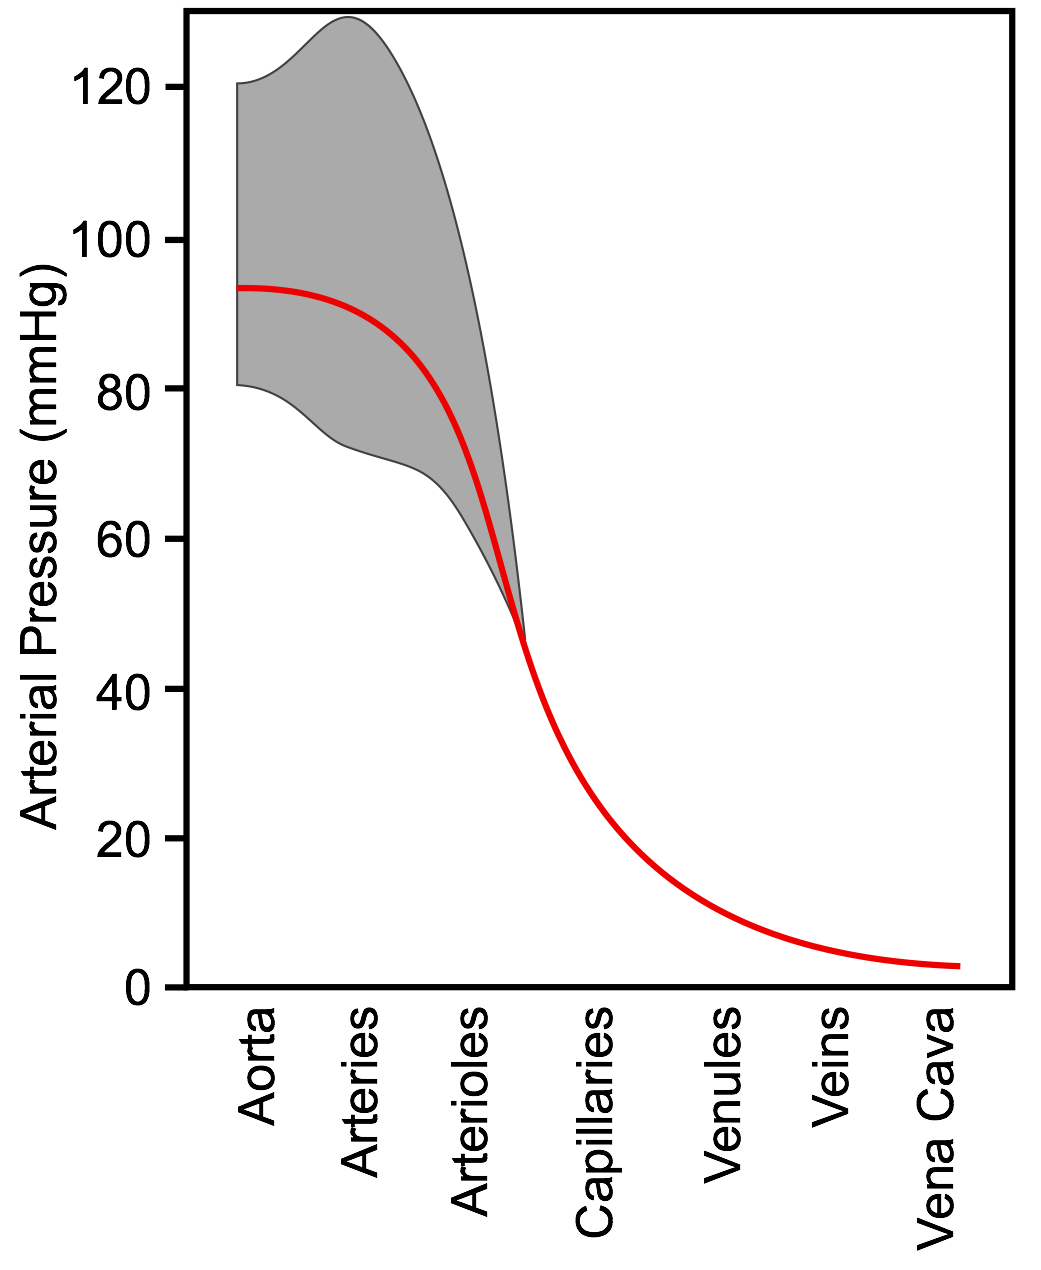 pressure vessel connected to capillary example